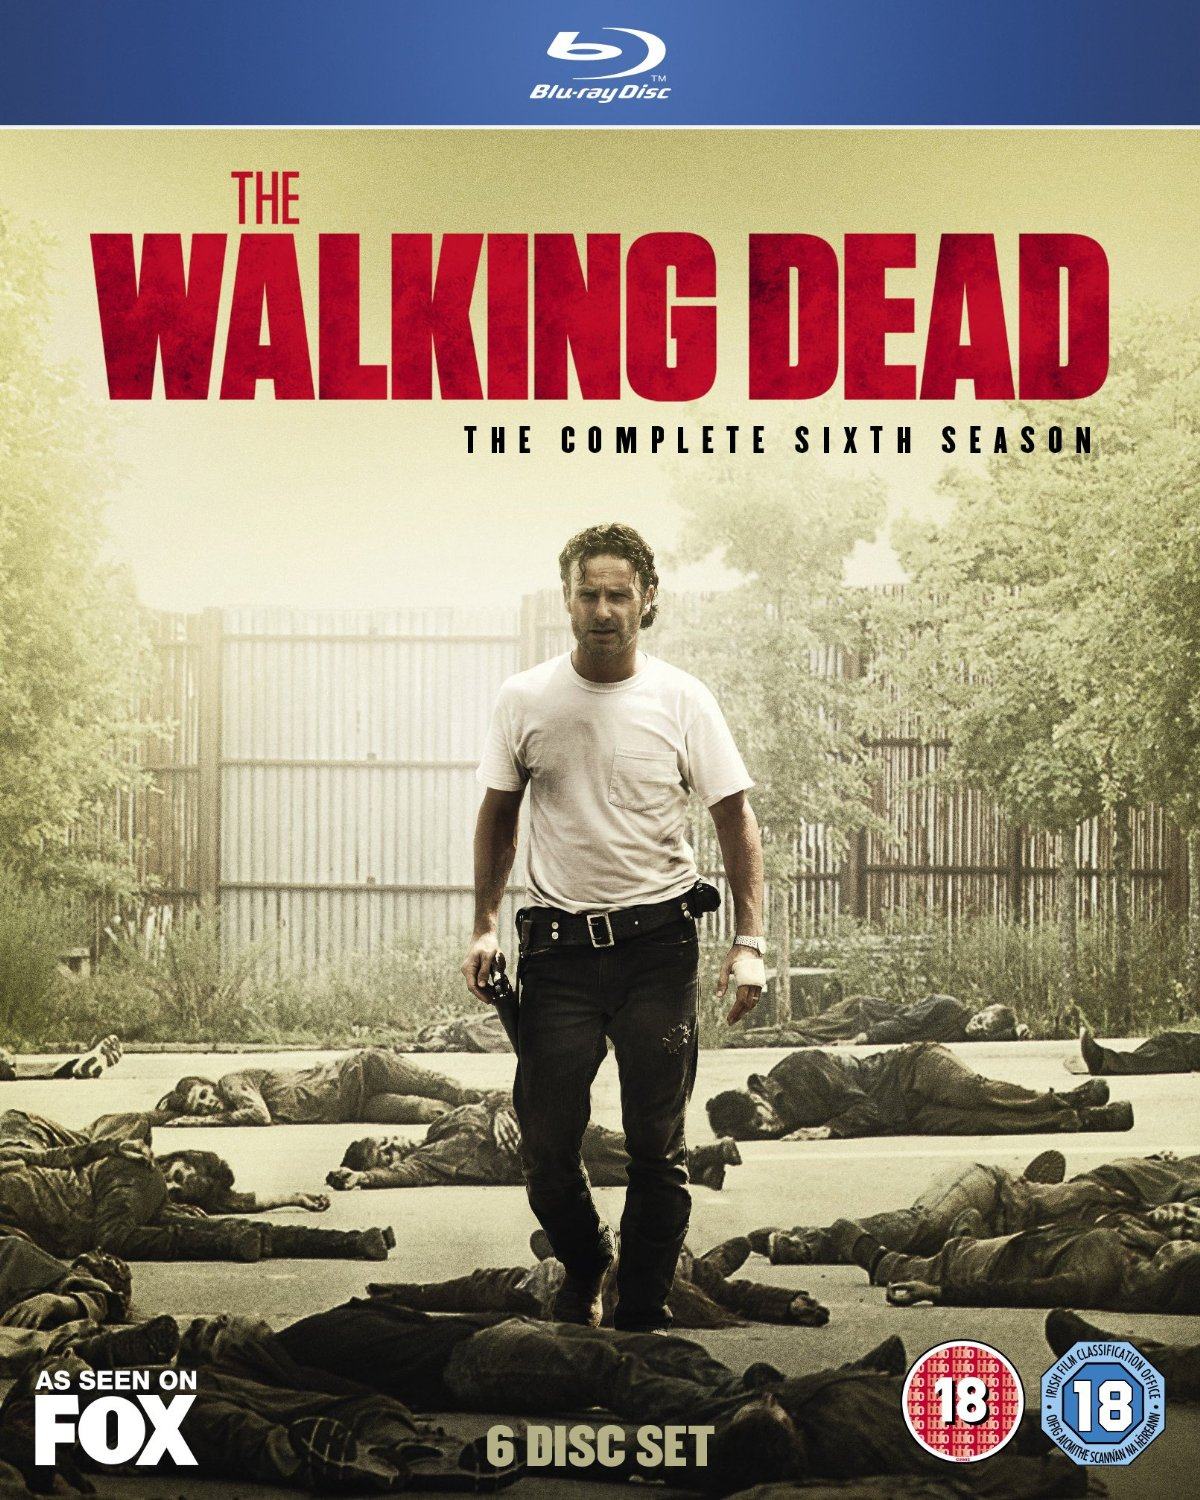 Walking Dead Season 6 Blu-ray review